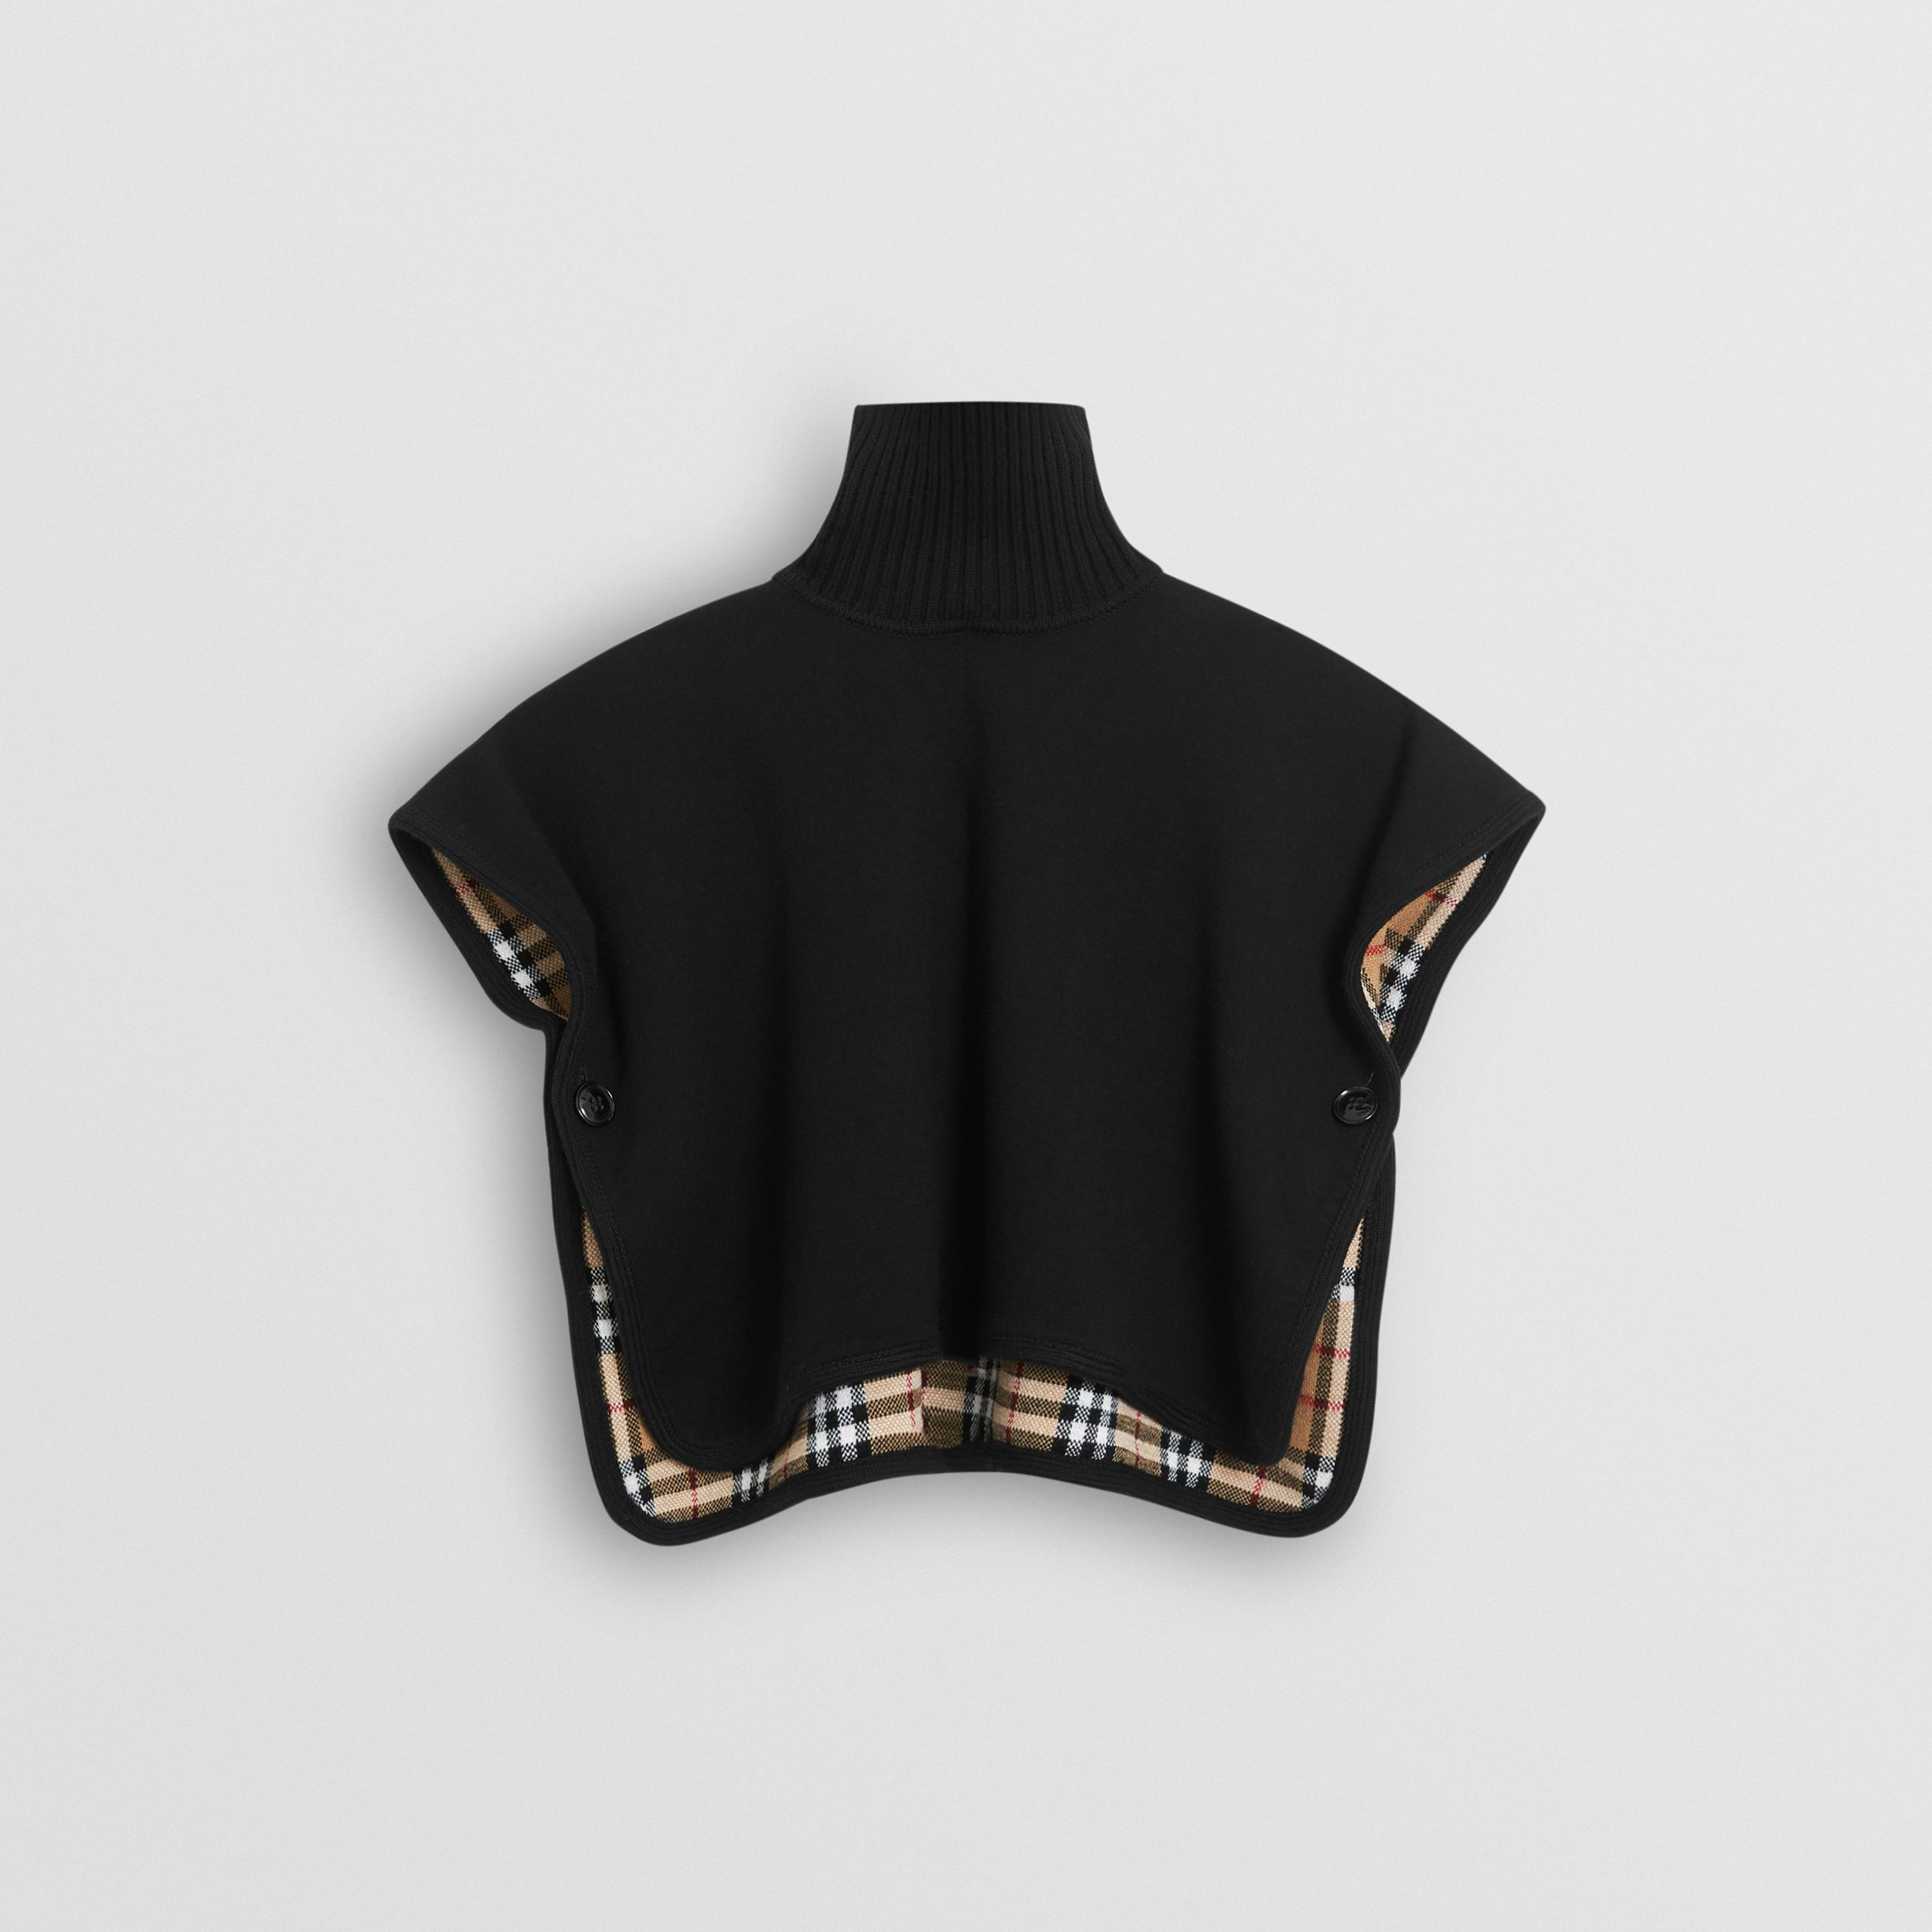 Reversible Vintage Check Merino Wool Jacquard Poncho in Black | Burberry - 1